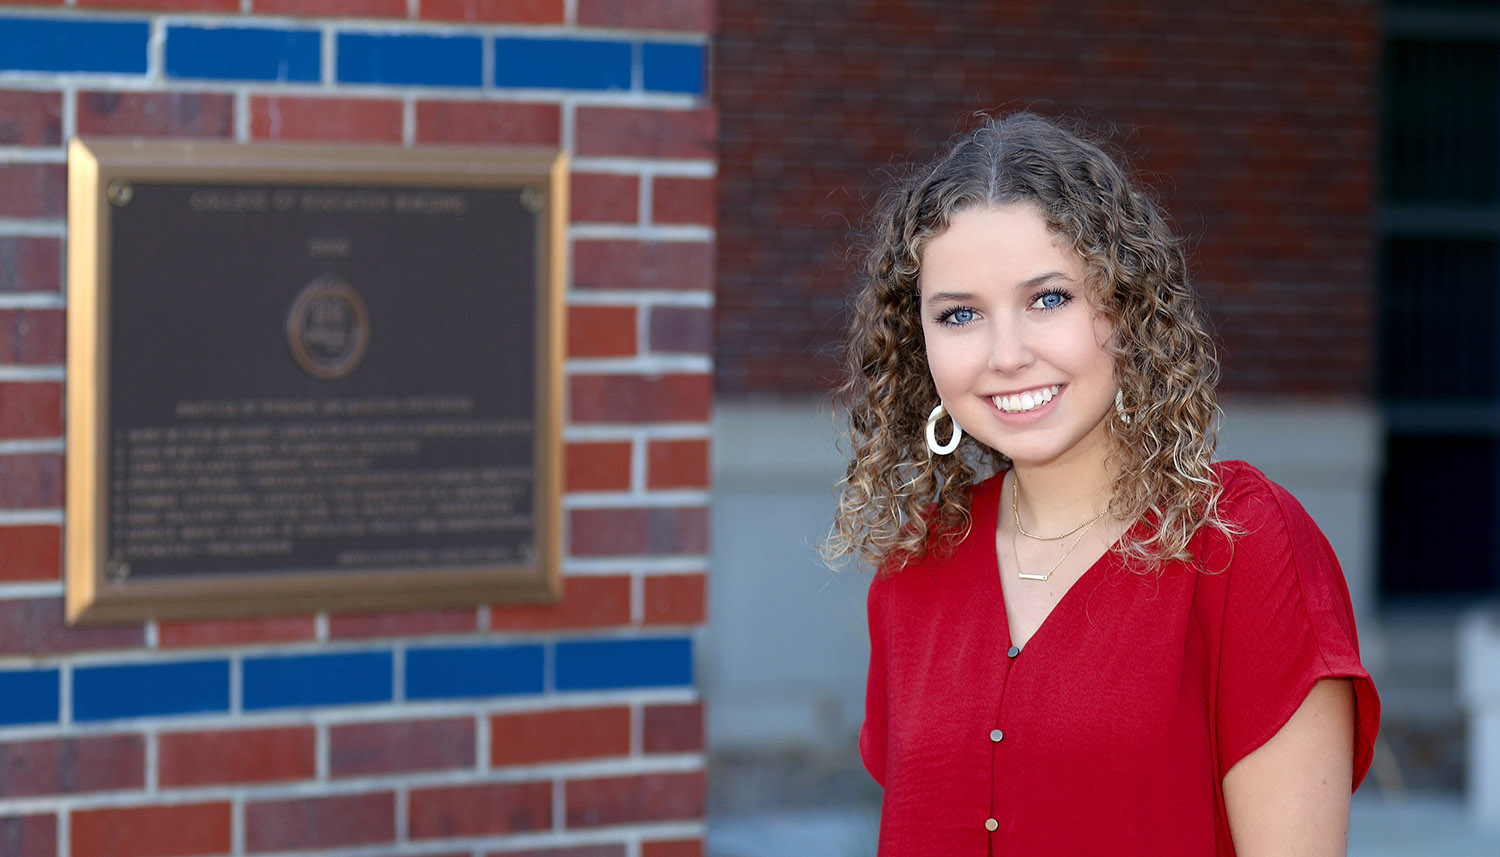 Tiffany Conrad, a middle grades education major from Aurora, is one of 13 students enrolled in a UNK course that provides substitute teachers for area schools. Conrad substitute teaches in Grand Island.